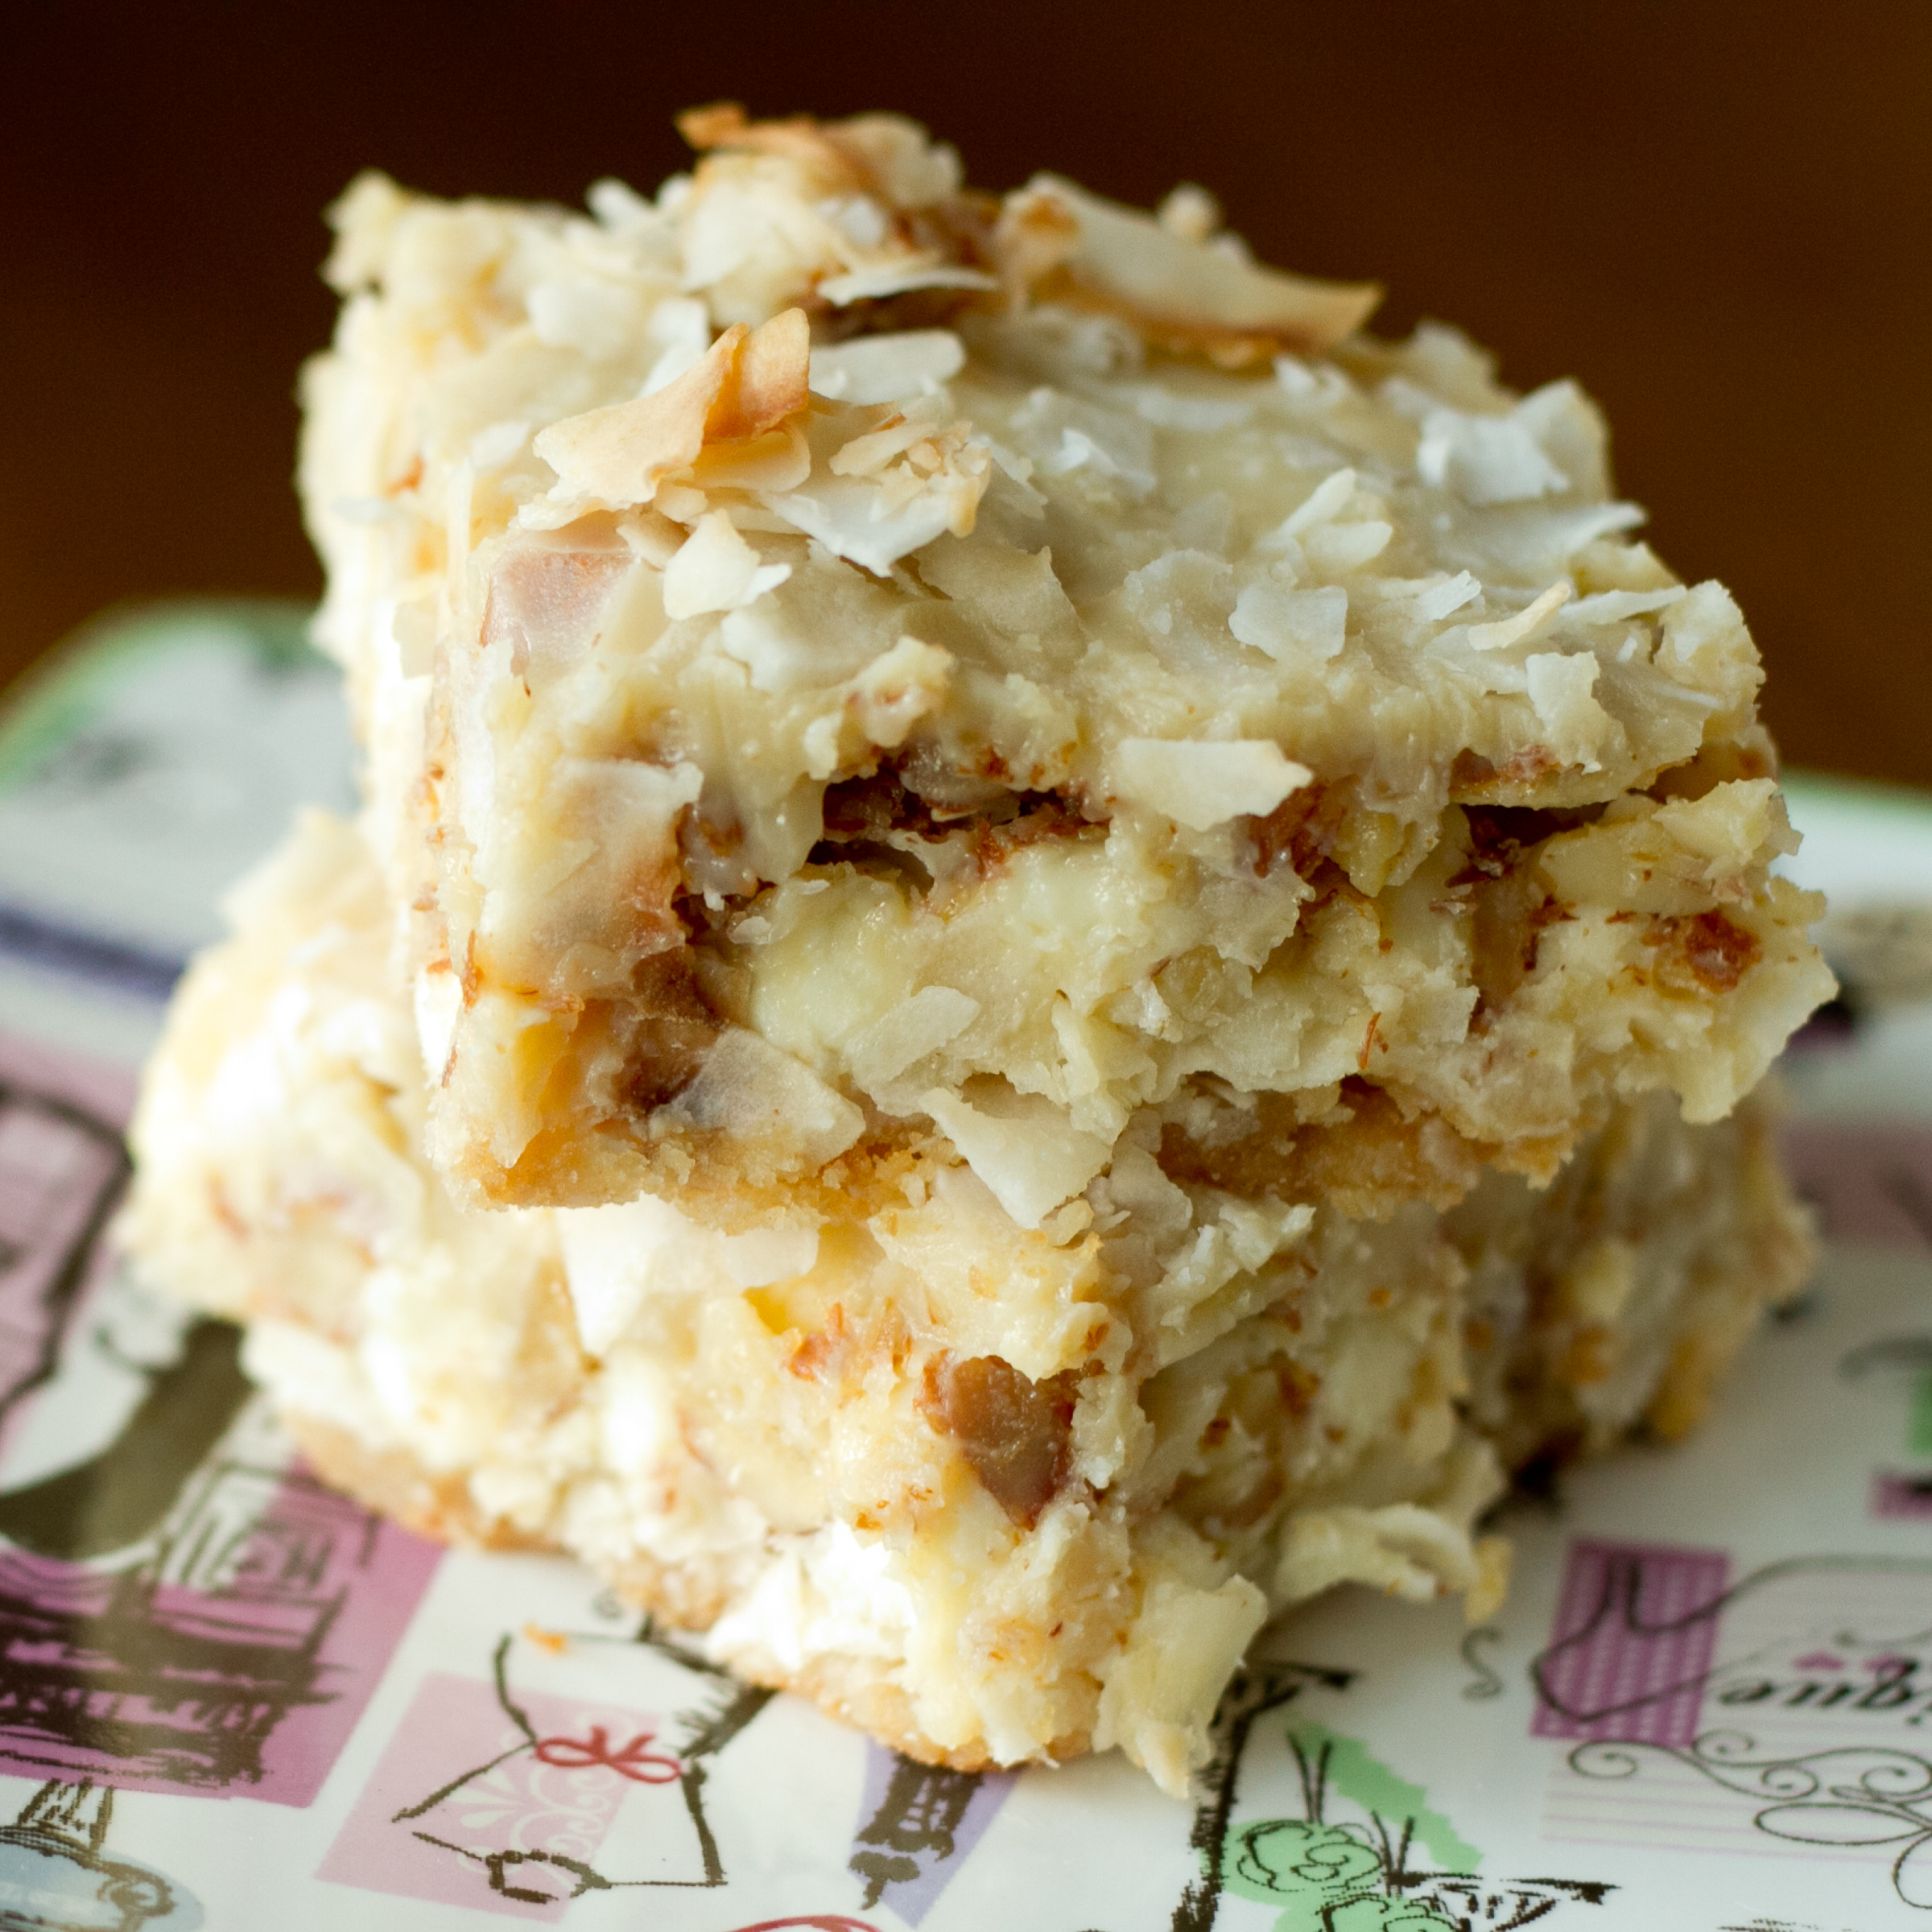 Week 3 #12WksXmasTreats: Key Lime Pie Magic Cookie Bars